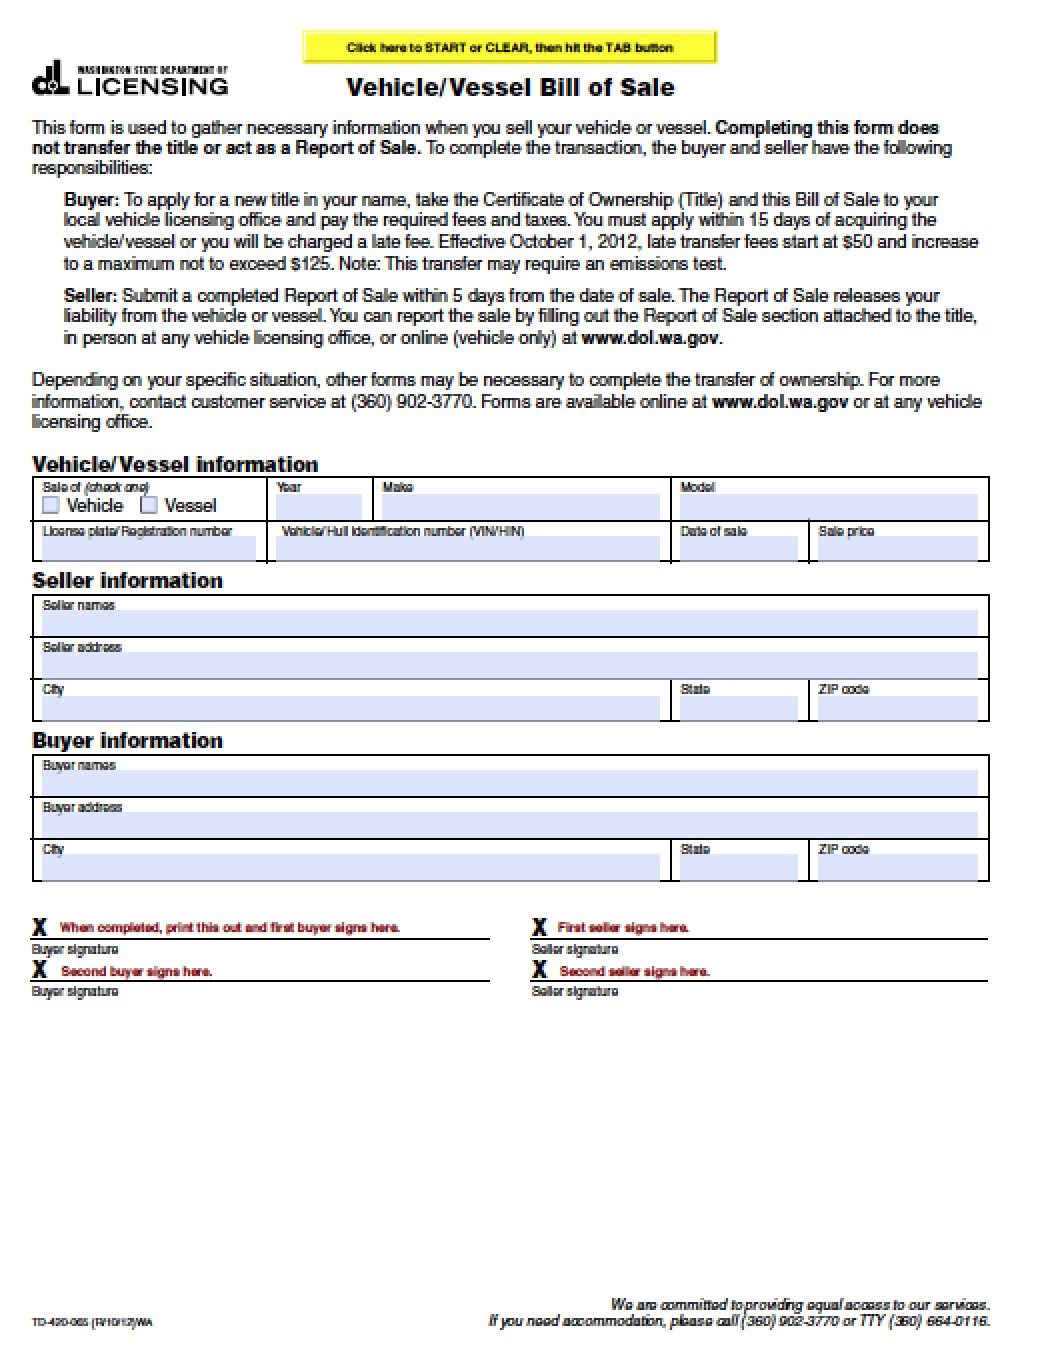 bill of sale wa Free Washington Vehicle/Vessel Bill of Sale Form | PDF | Word (.doc)